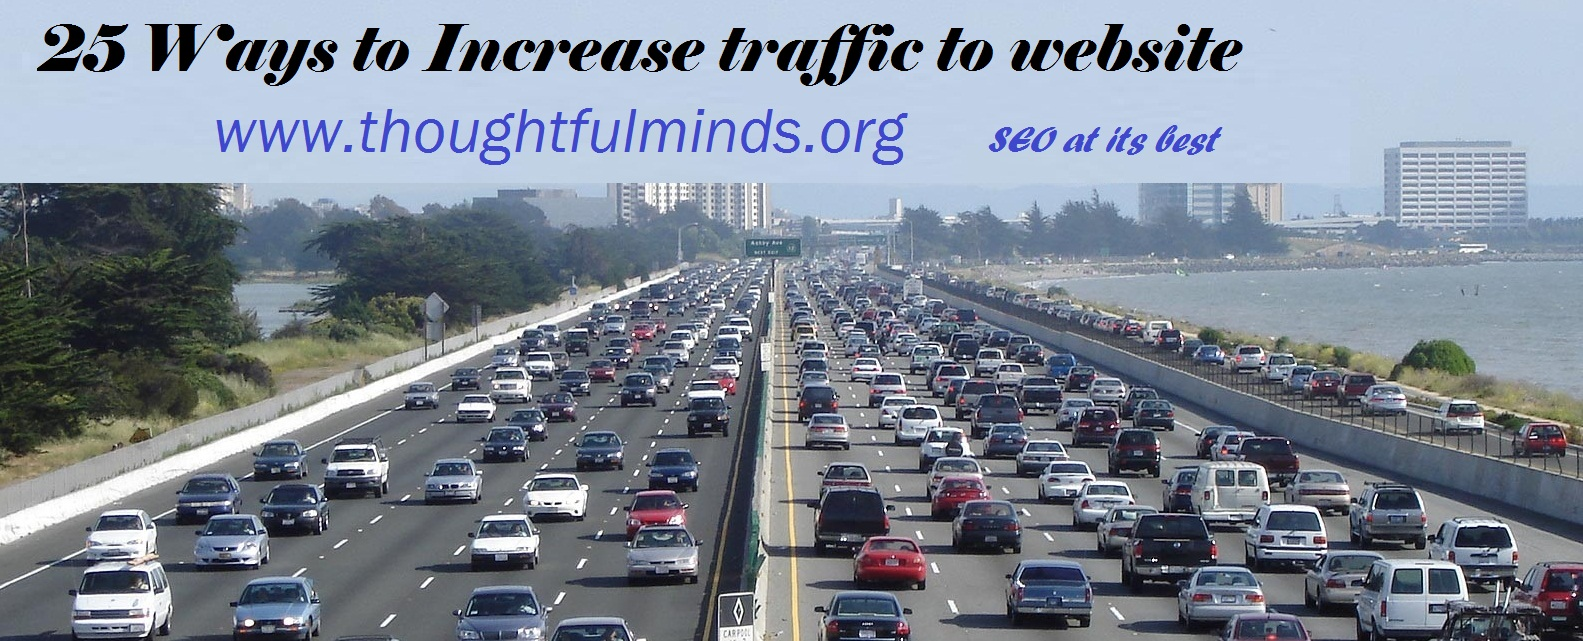 how to increase traffic to website